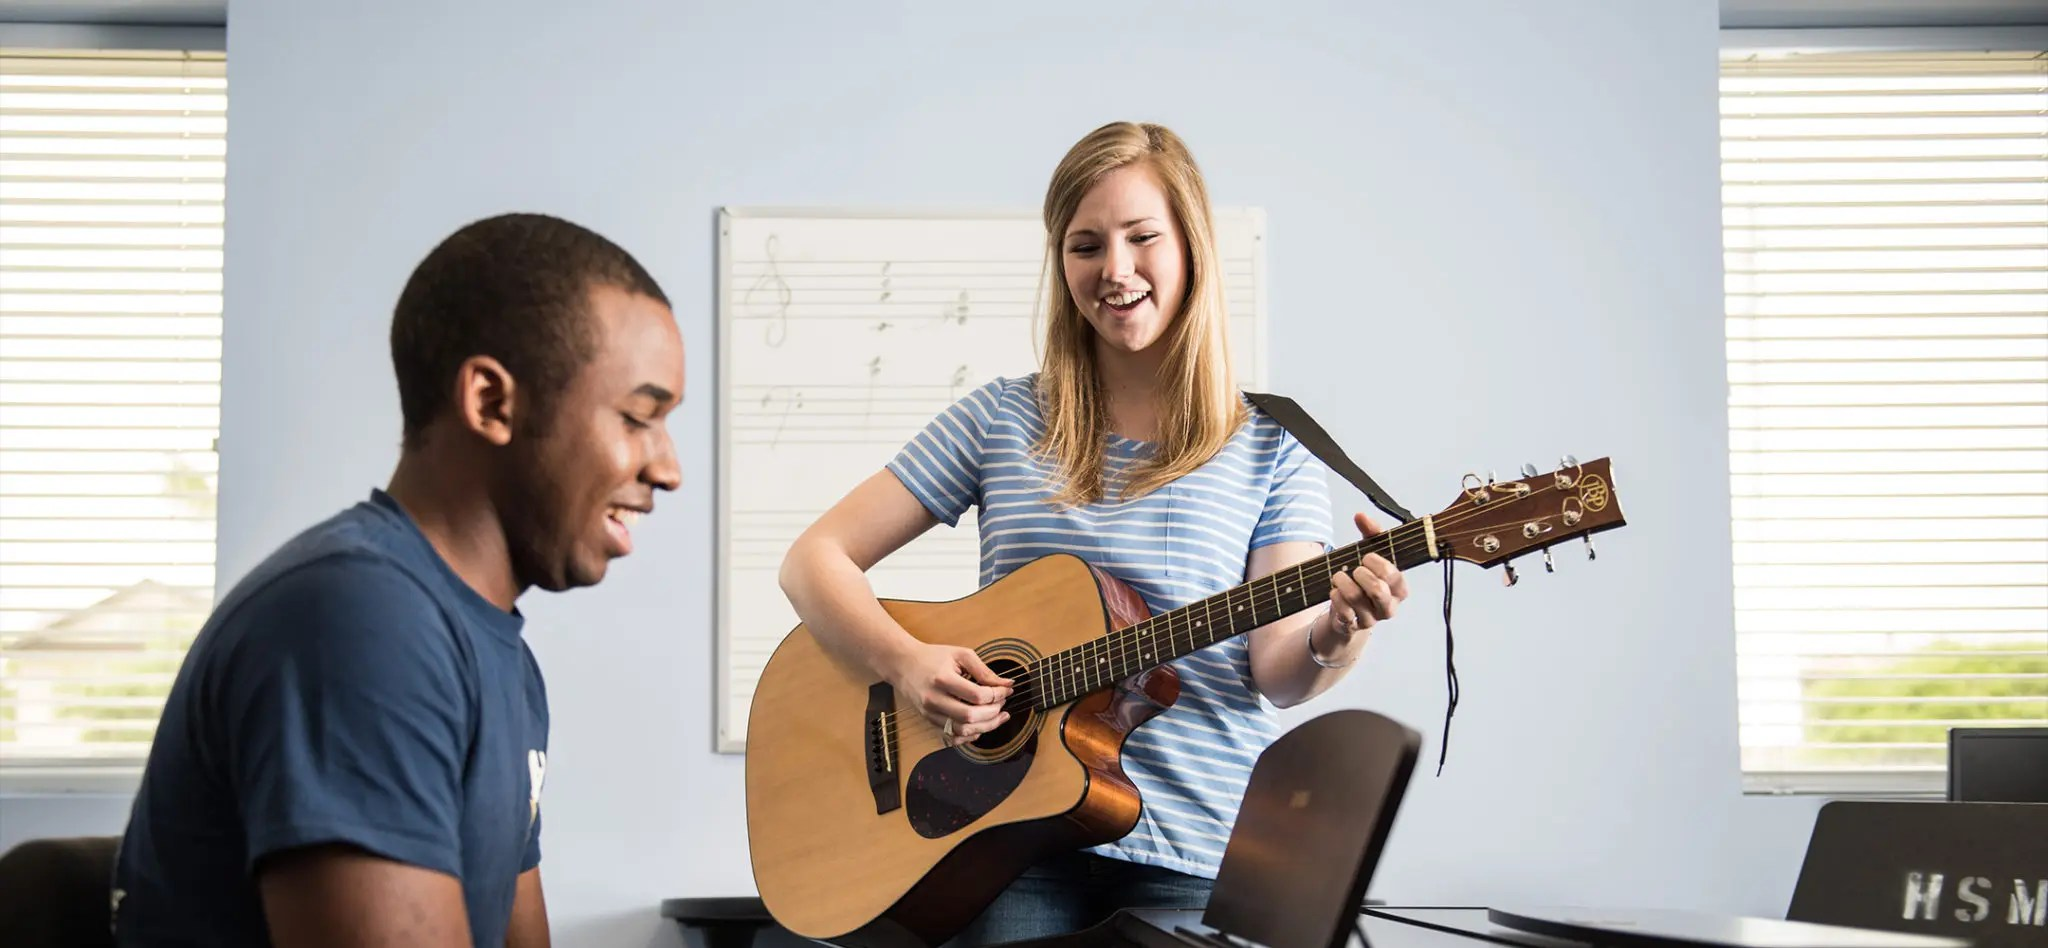 Two music therapy students playing music together. One with a guitar and the other on a piano.